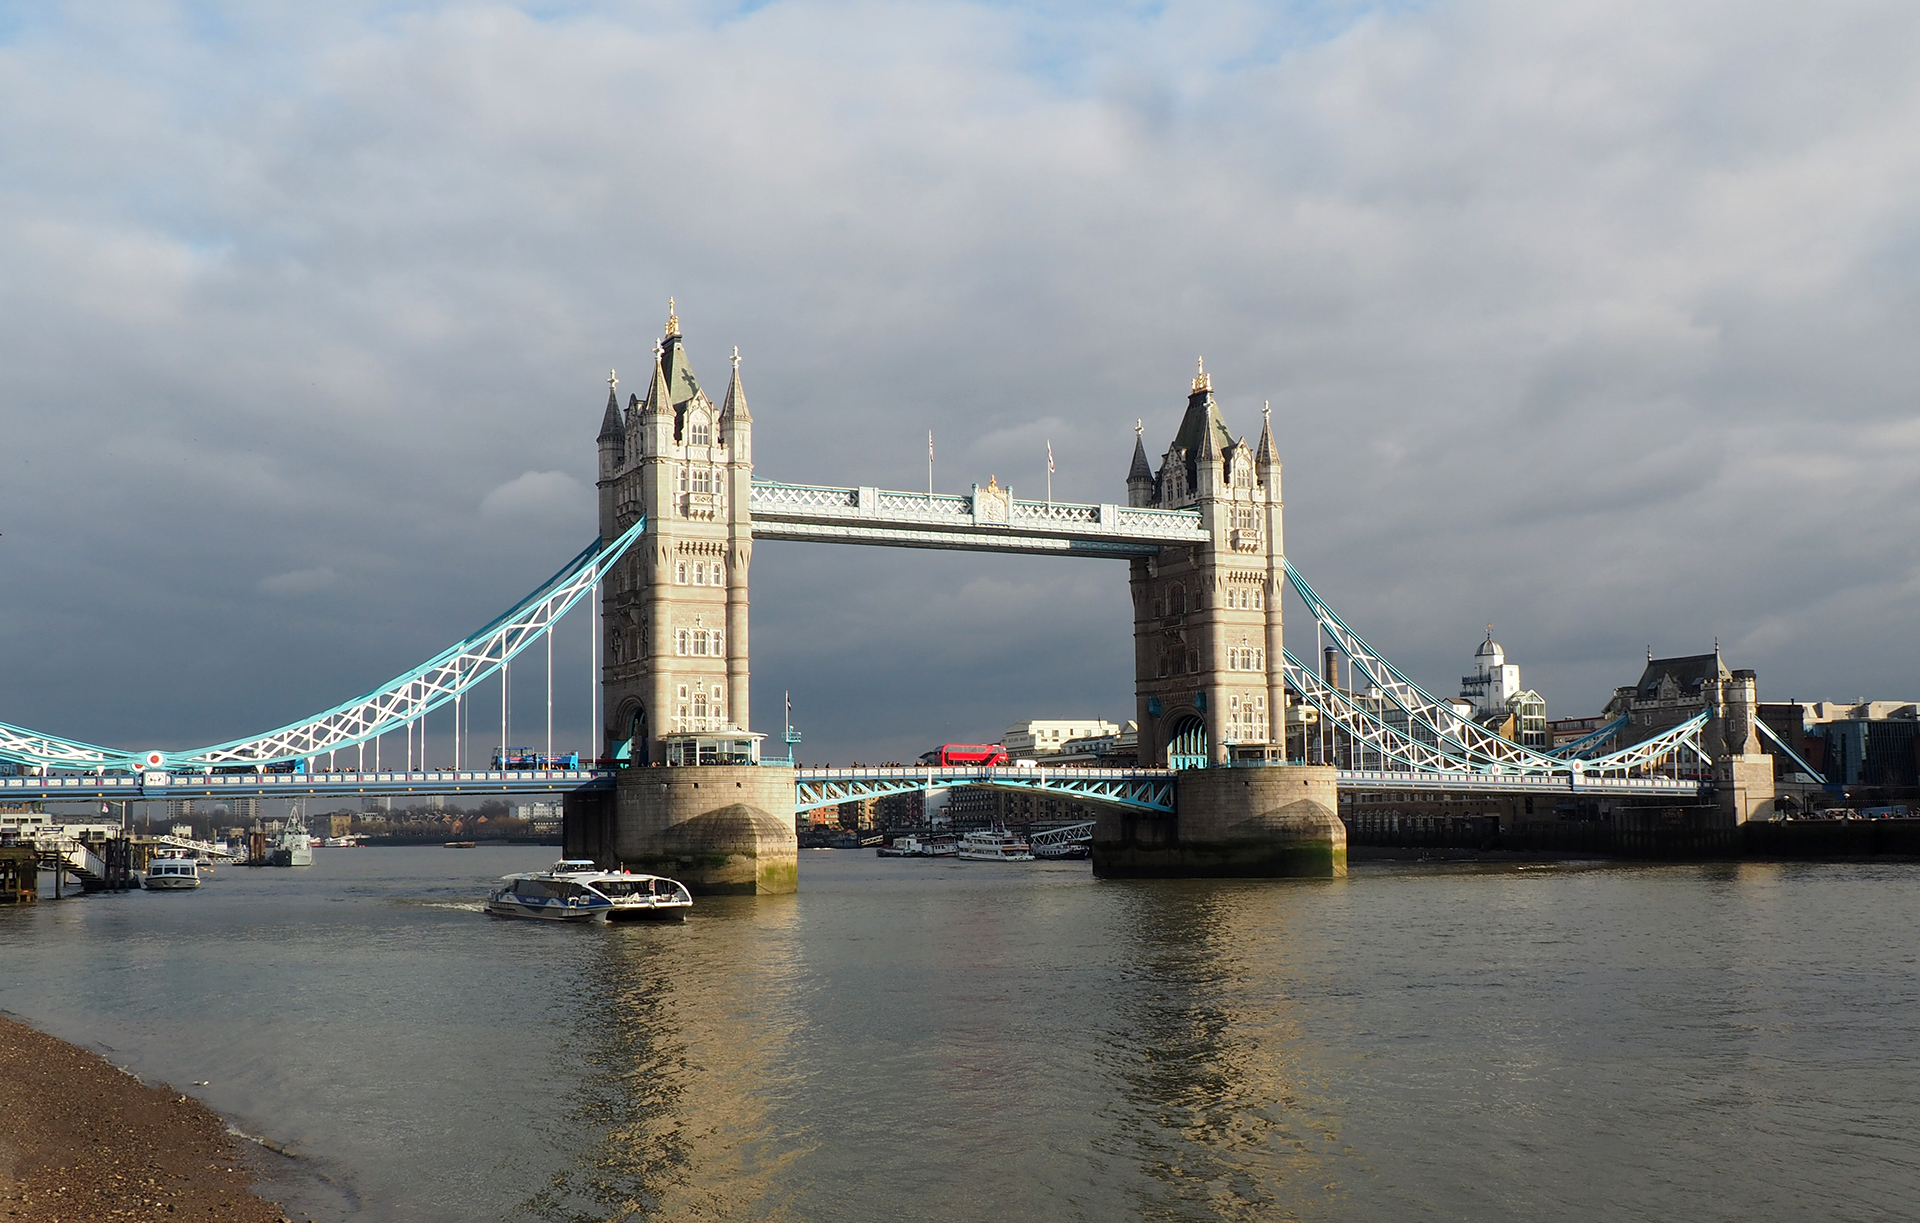 The iconic Tower Bridge across the Thames